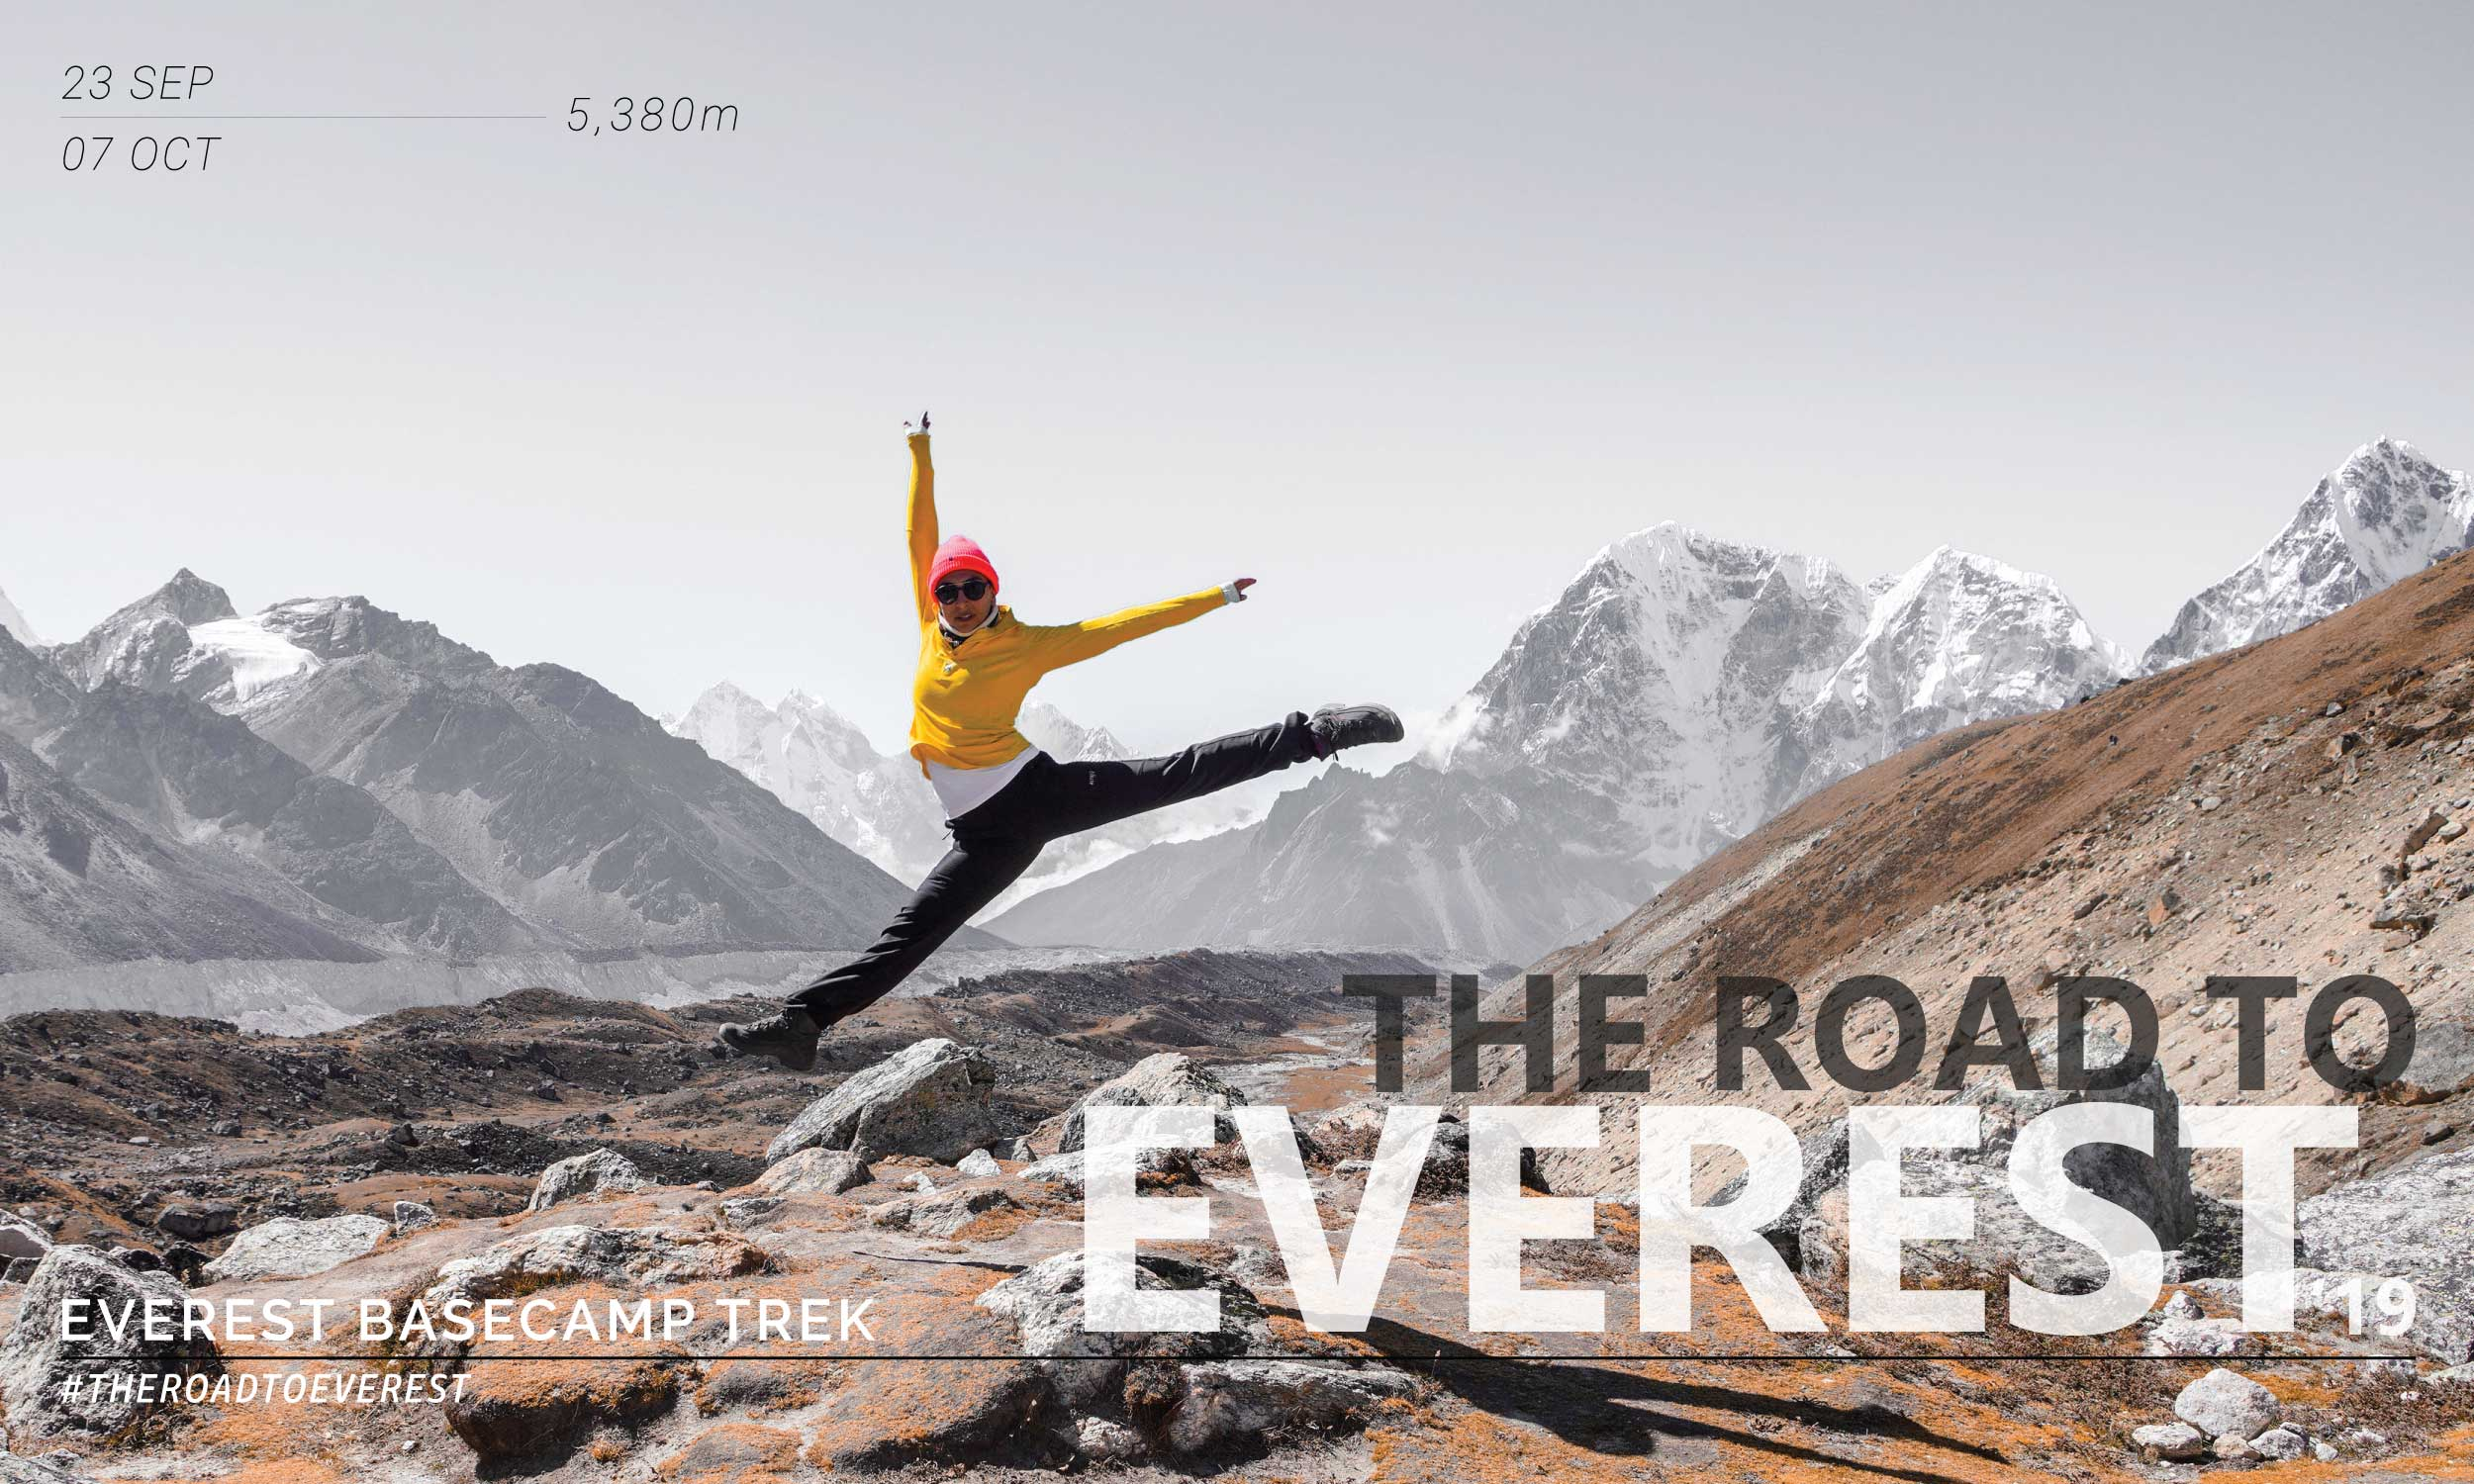 The Road to Everest 19'